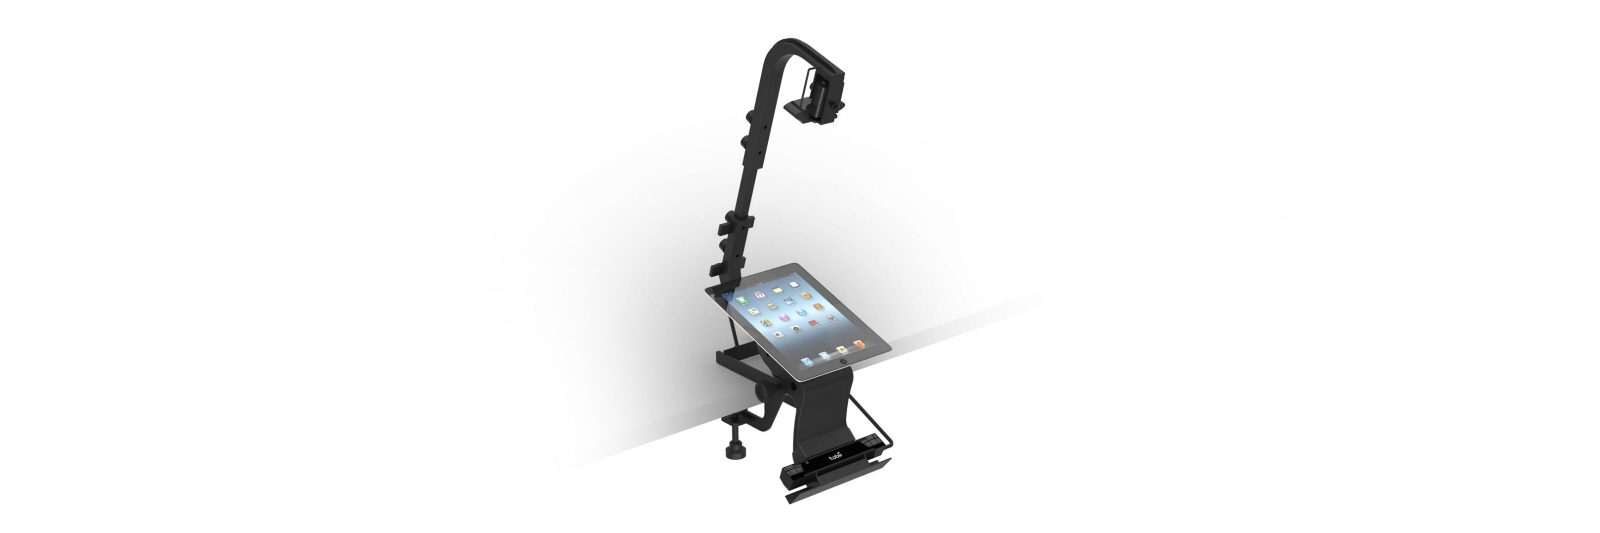 Tobii Pro Mobile Device Stand.